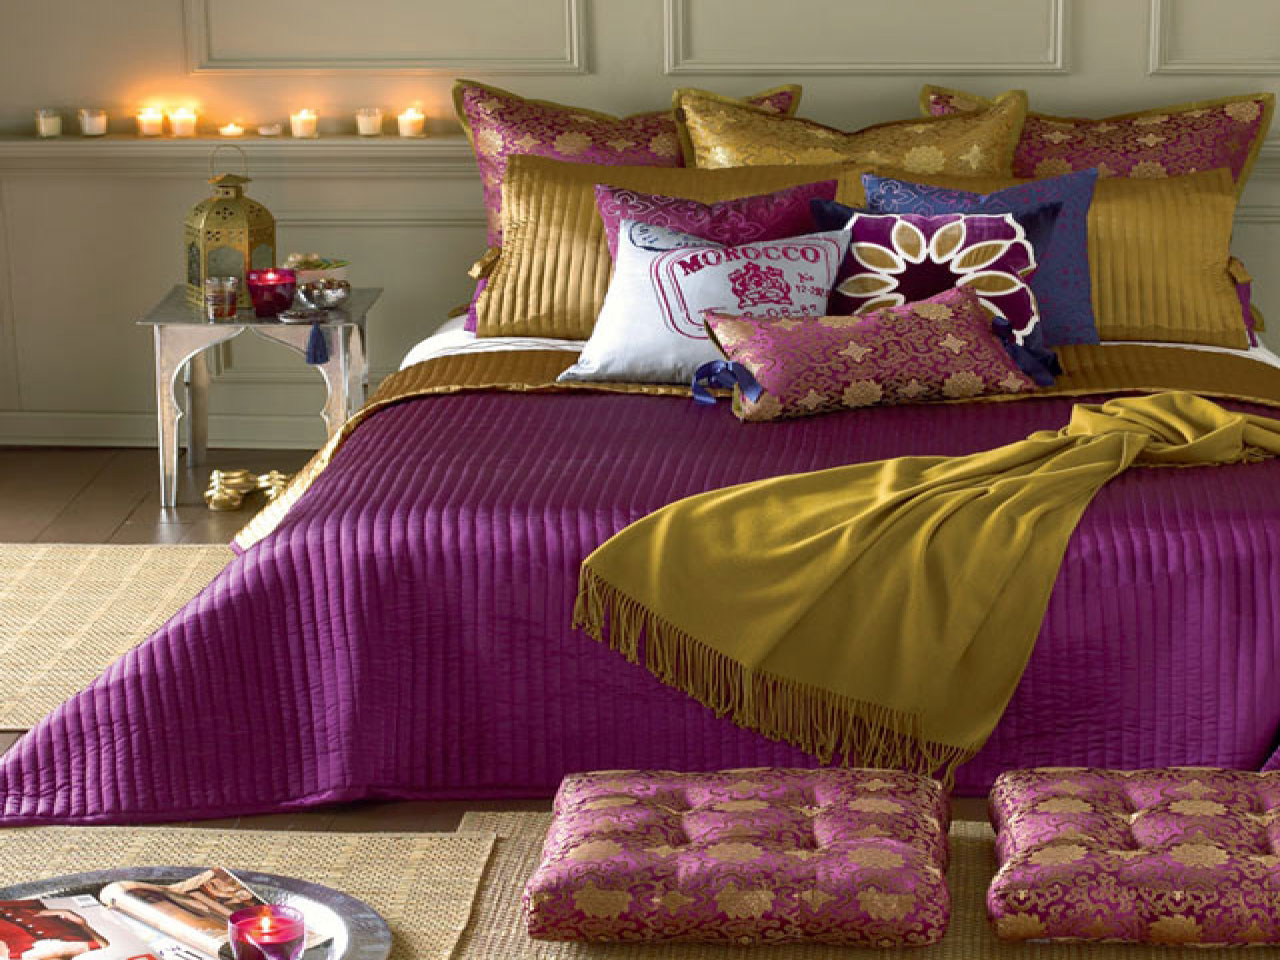 White Purple Golden Bedroom Wall Bed Pillow